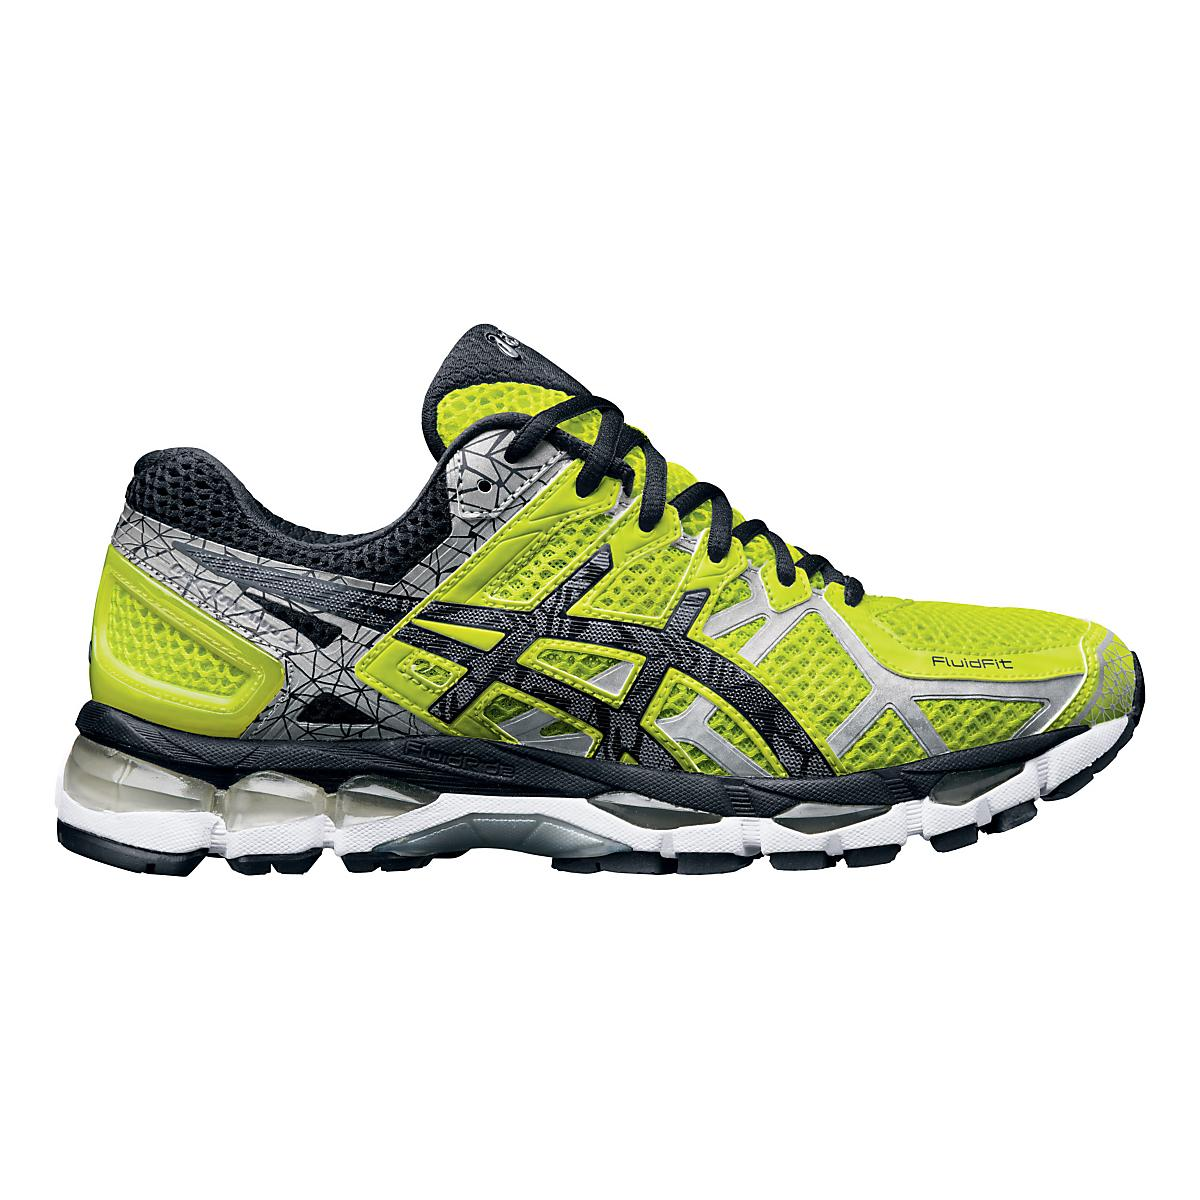 mens asics gel kayano 21 running shoe at road runner sports. Black Bedroom Furniture Sets. Home Design Ideas